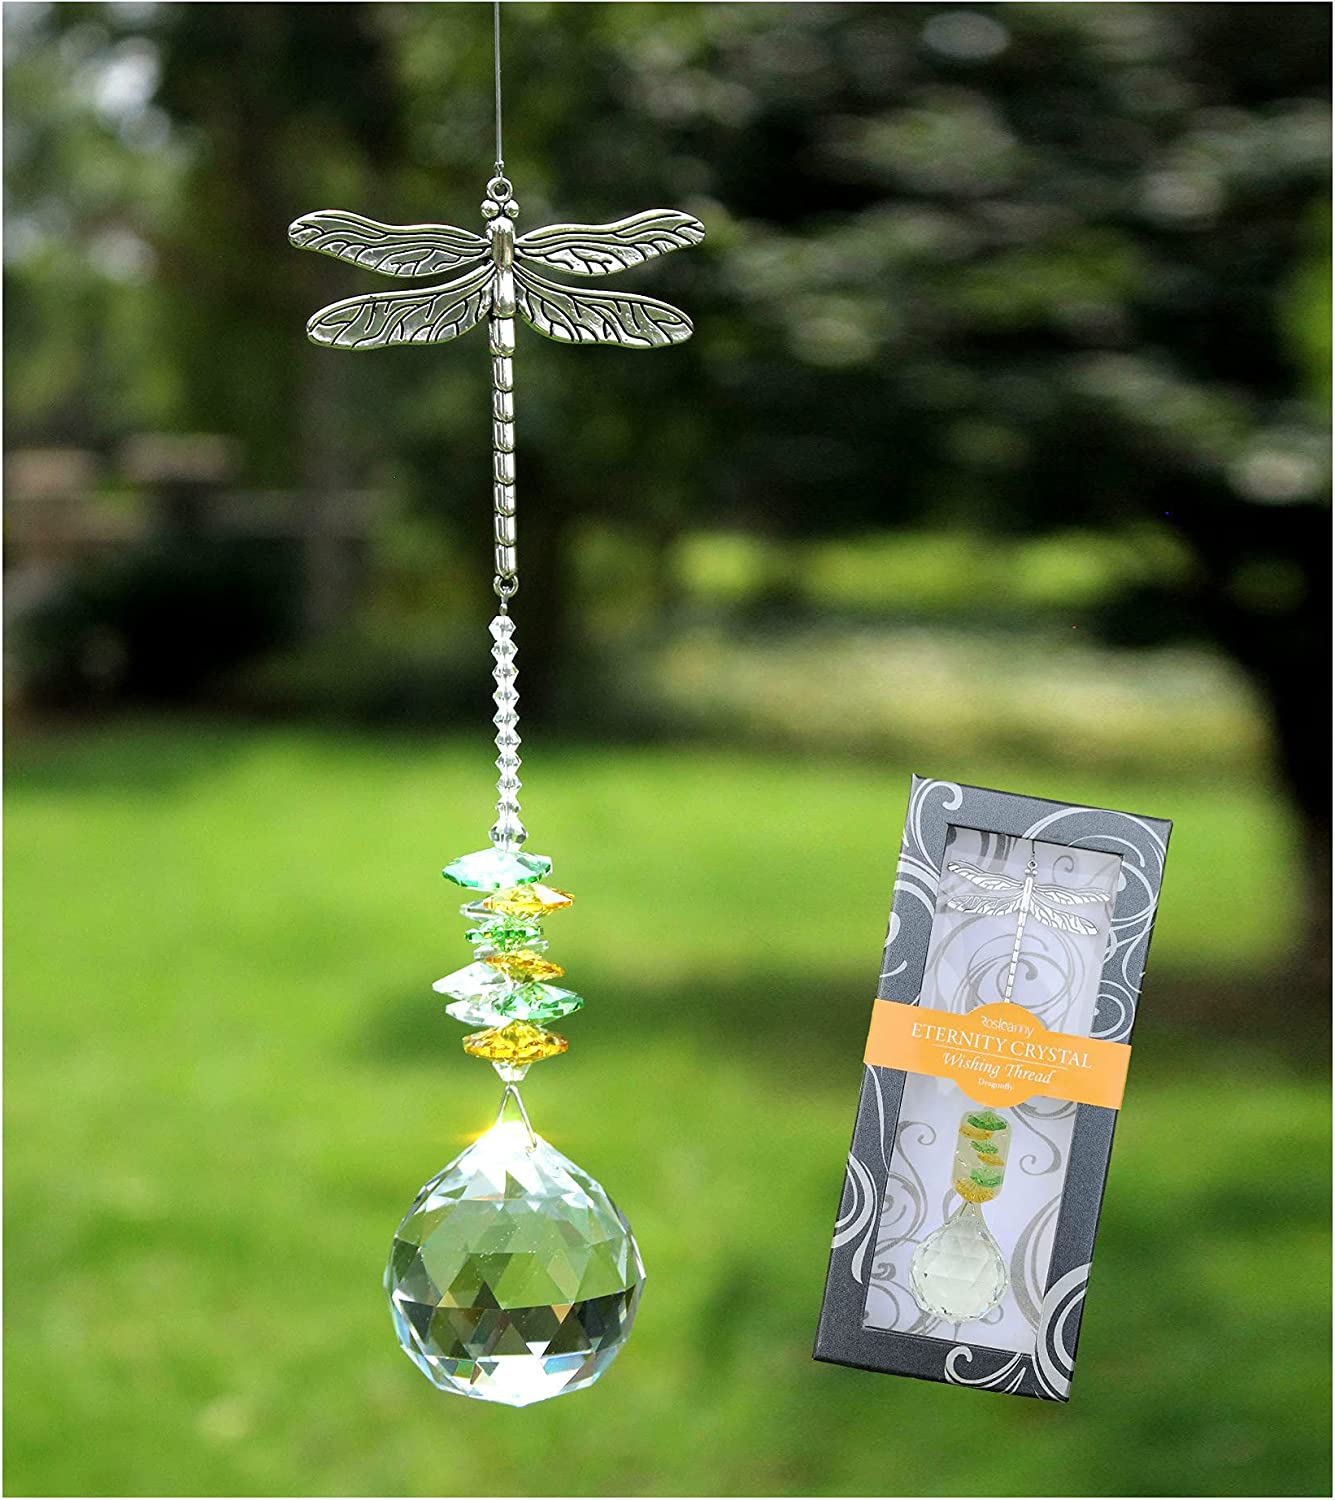 Rosleanny Crystal Garden Suncatcher Hanging Crystals Ornament for Window Rainbow Maker Prisms Home Decor Gift Boxed Sun Catcher Gift Idea for Mom Friends Grandma, Dragonfly : Garden & Outdoor